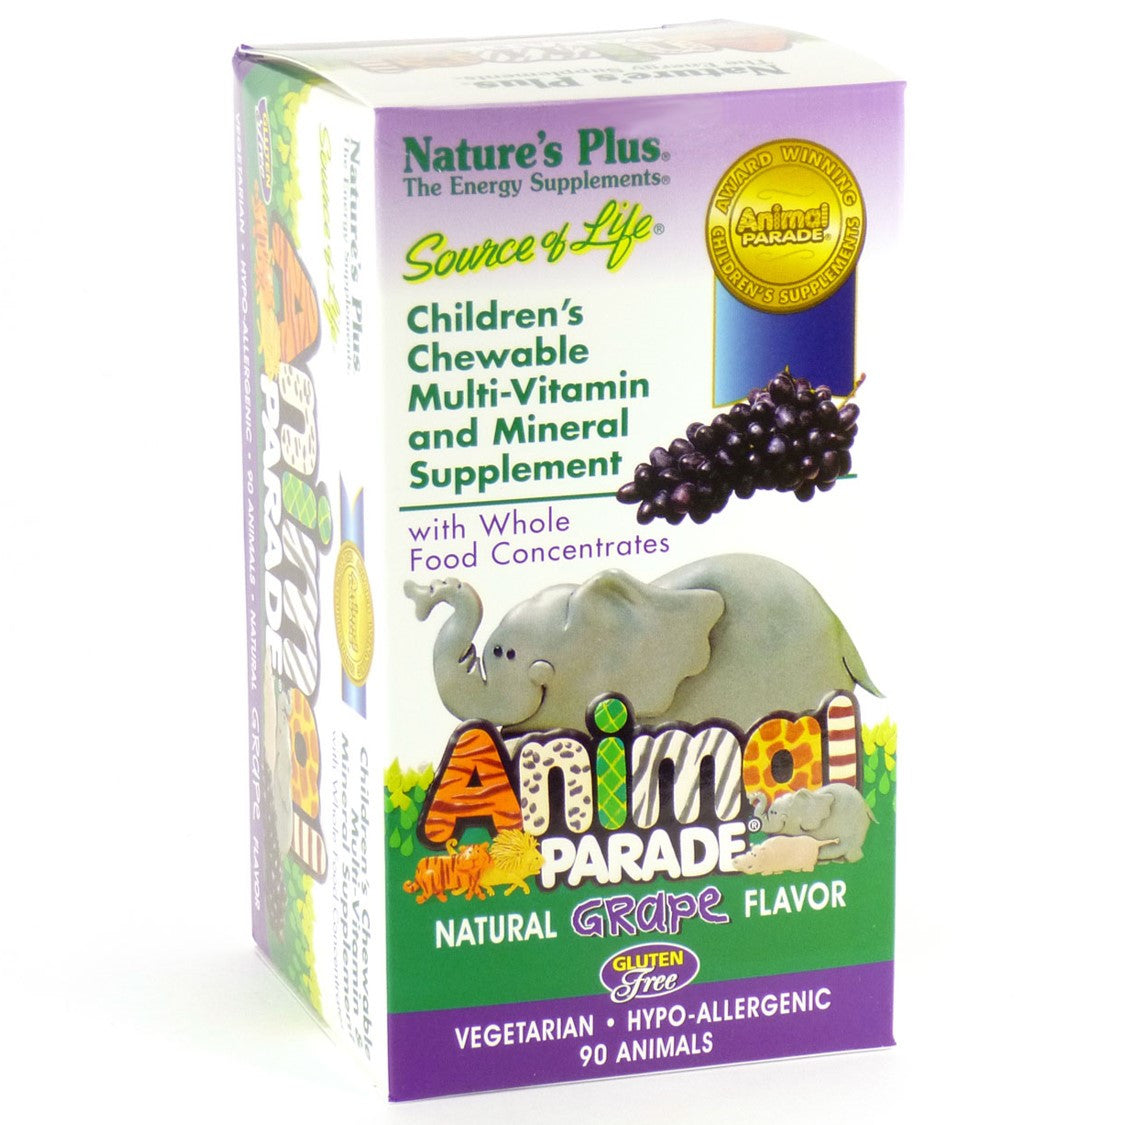 Natures Plus Source of Life Animal Parade Multi-Vitamin & Mineral (Grape), 90 tabs.-NaturesWisdom